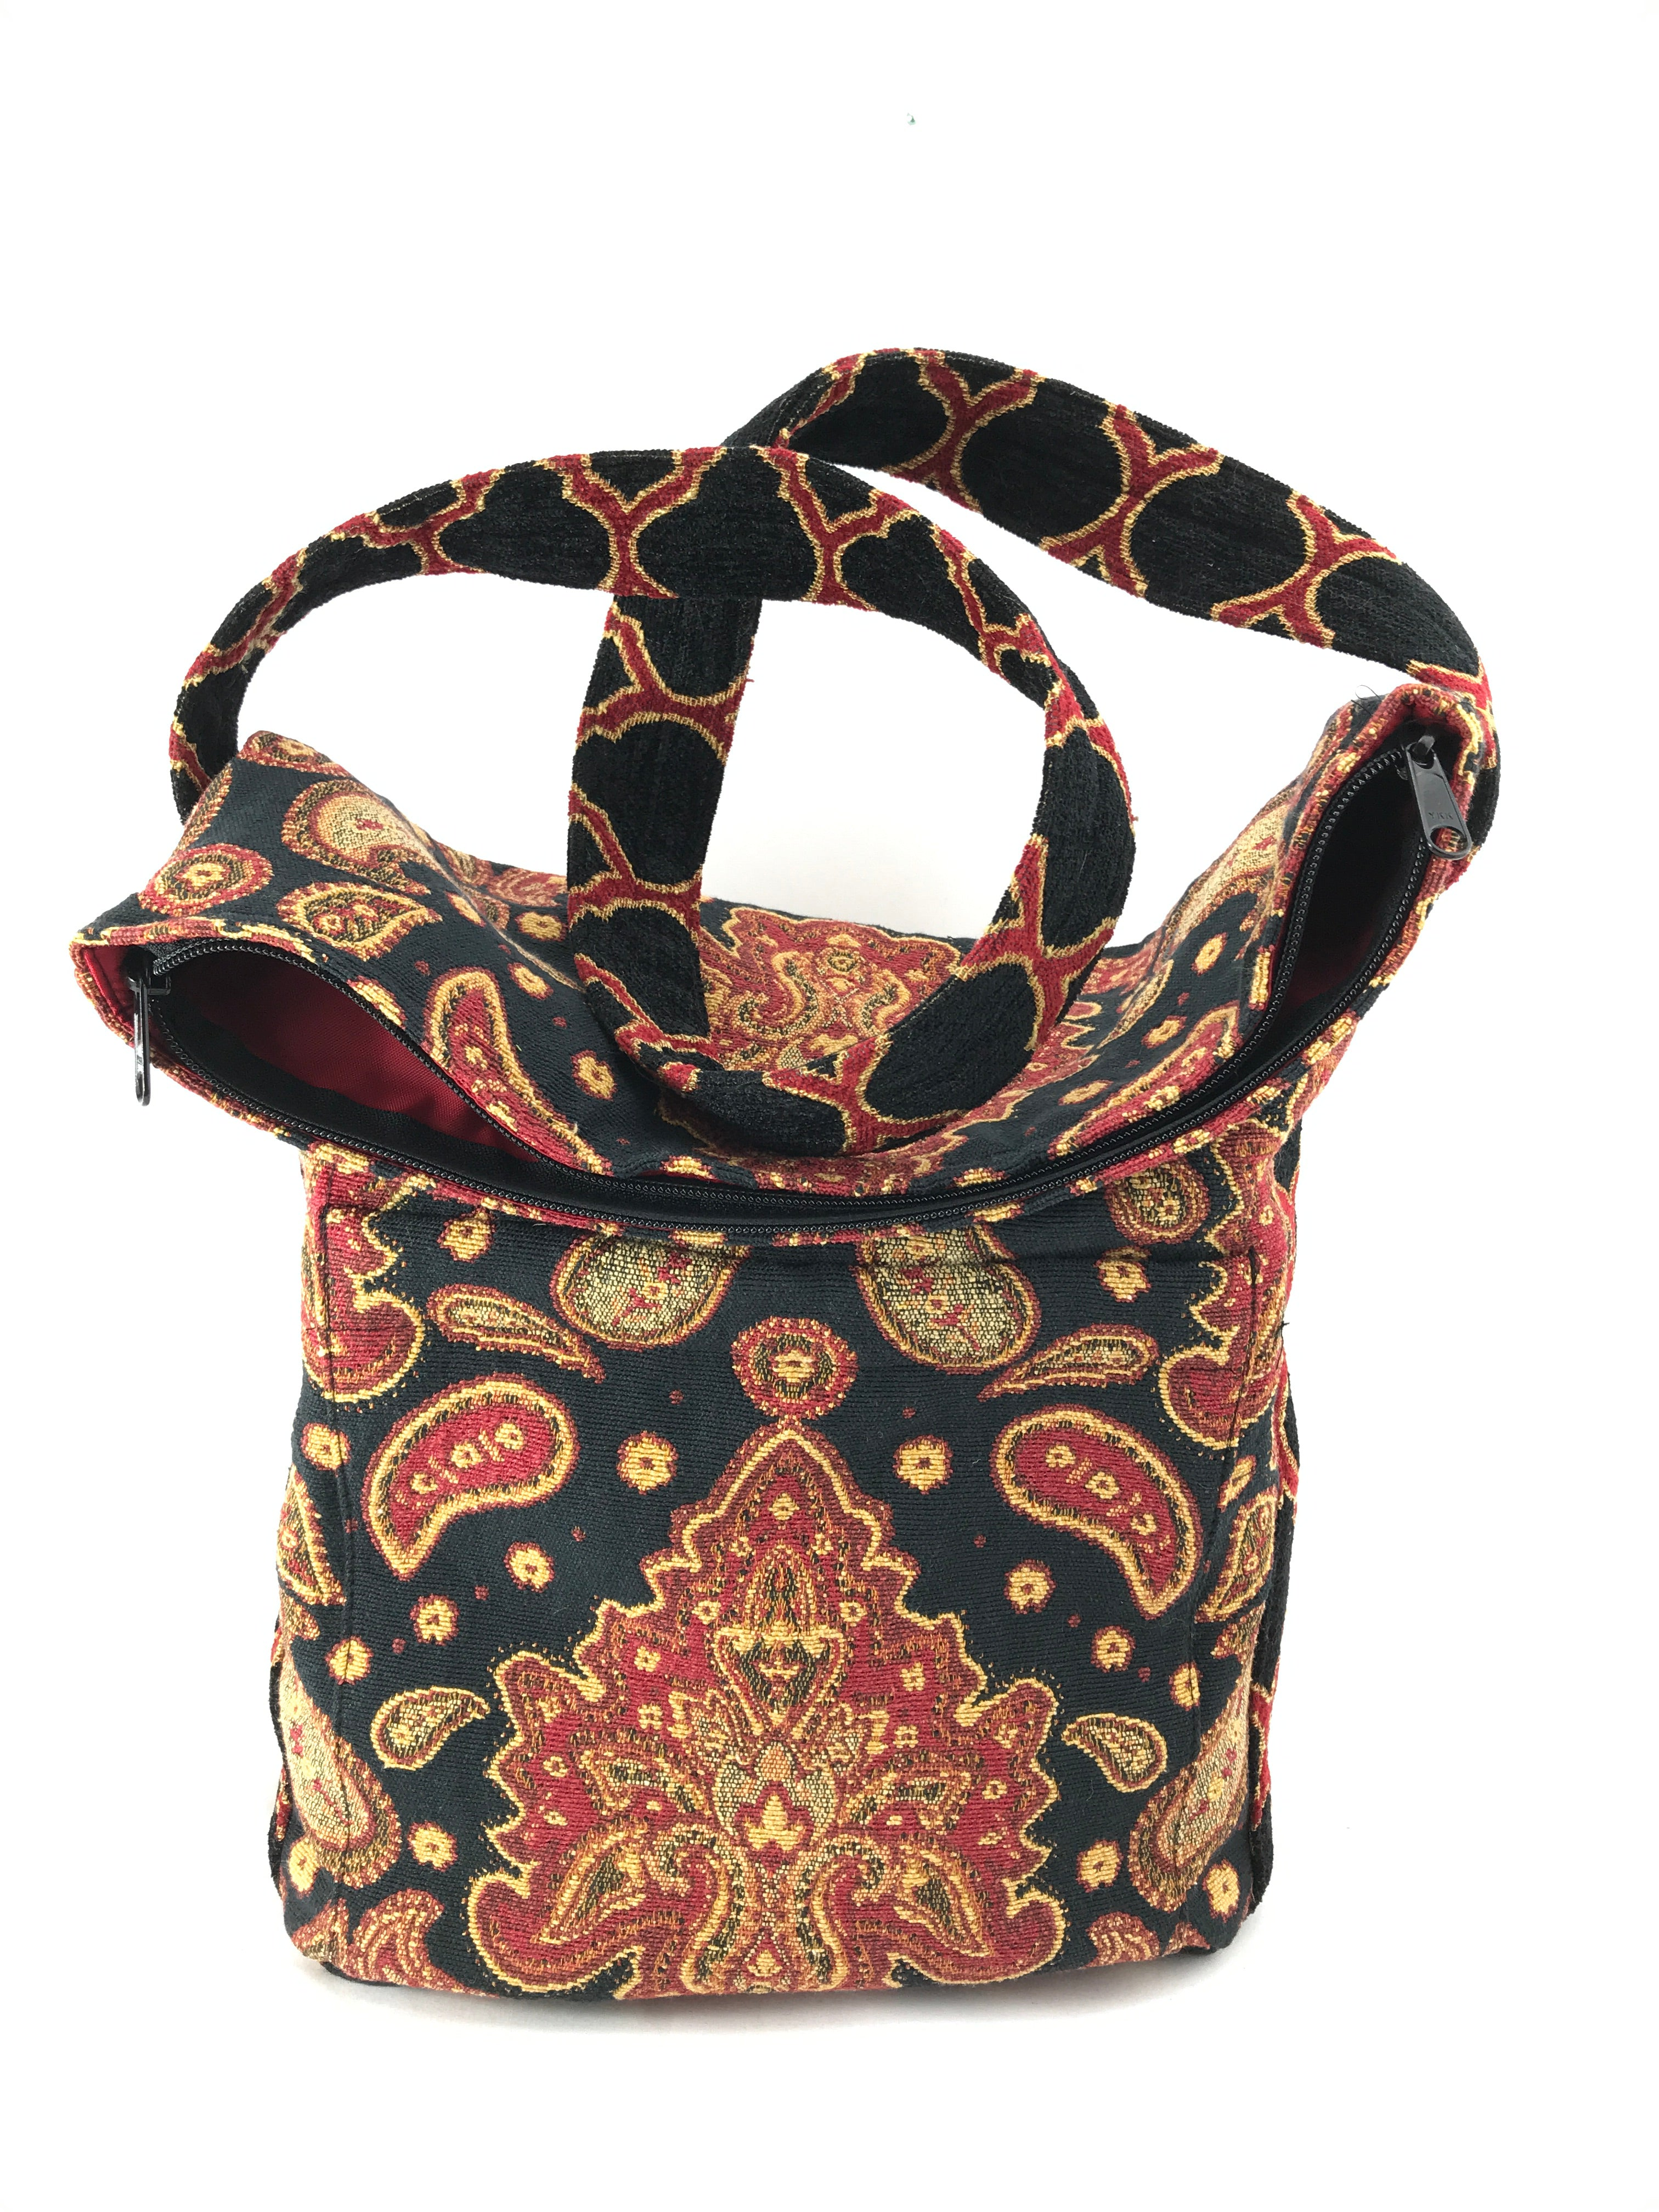 Sack Purse in Black and Red Medallion Tapestry